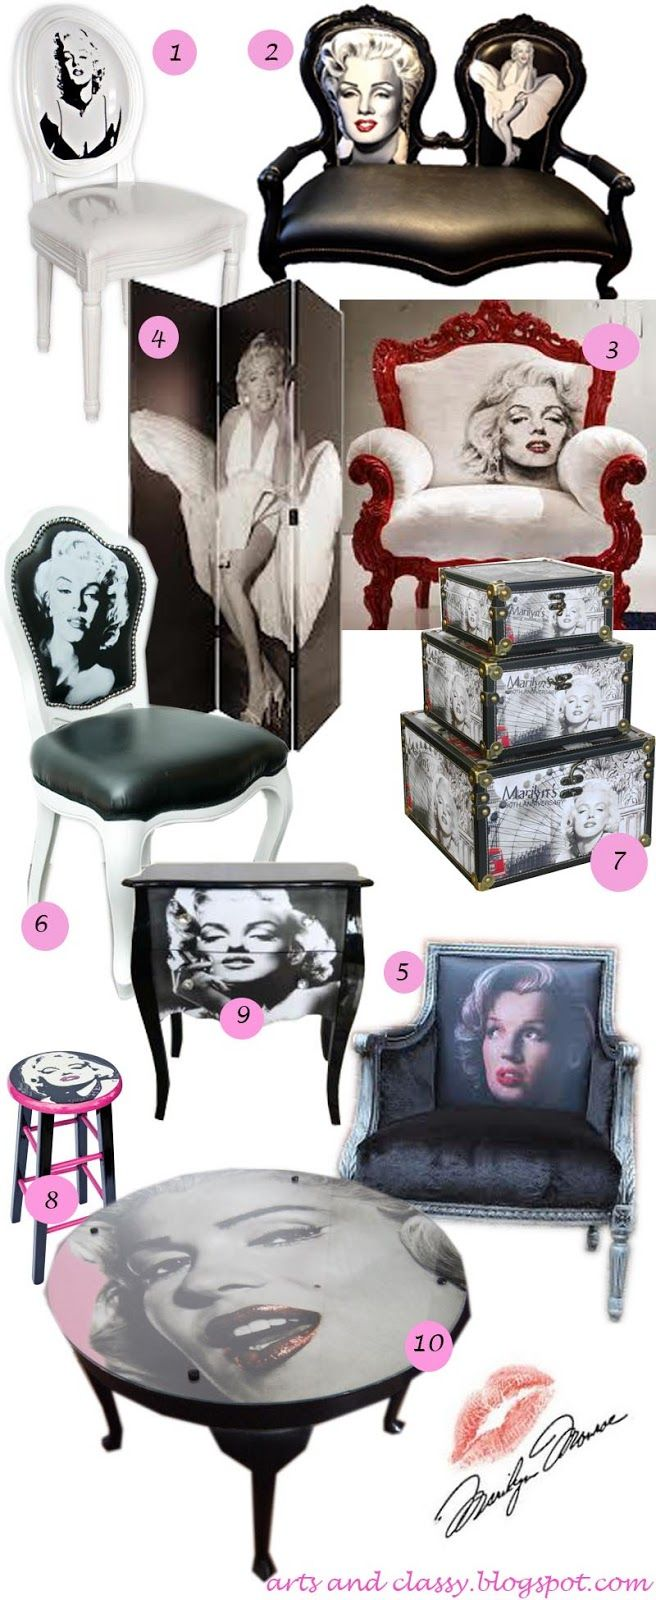 Diy Home Decor Ideas On A Budget Marilyn Monroe Inspired Furniture And Decor In Honor